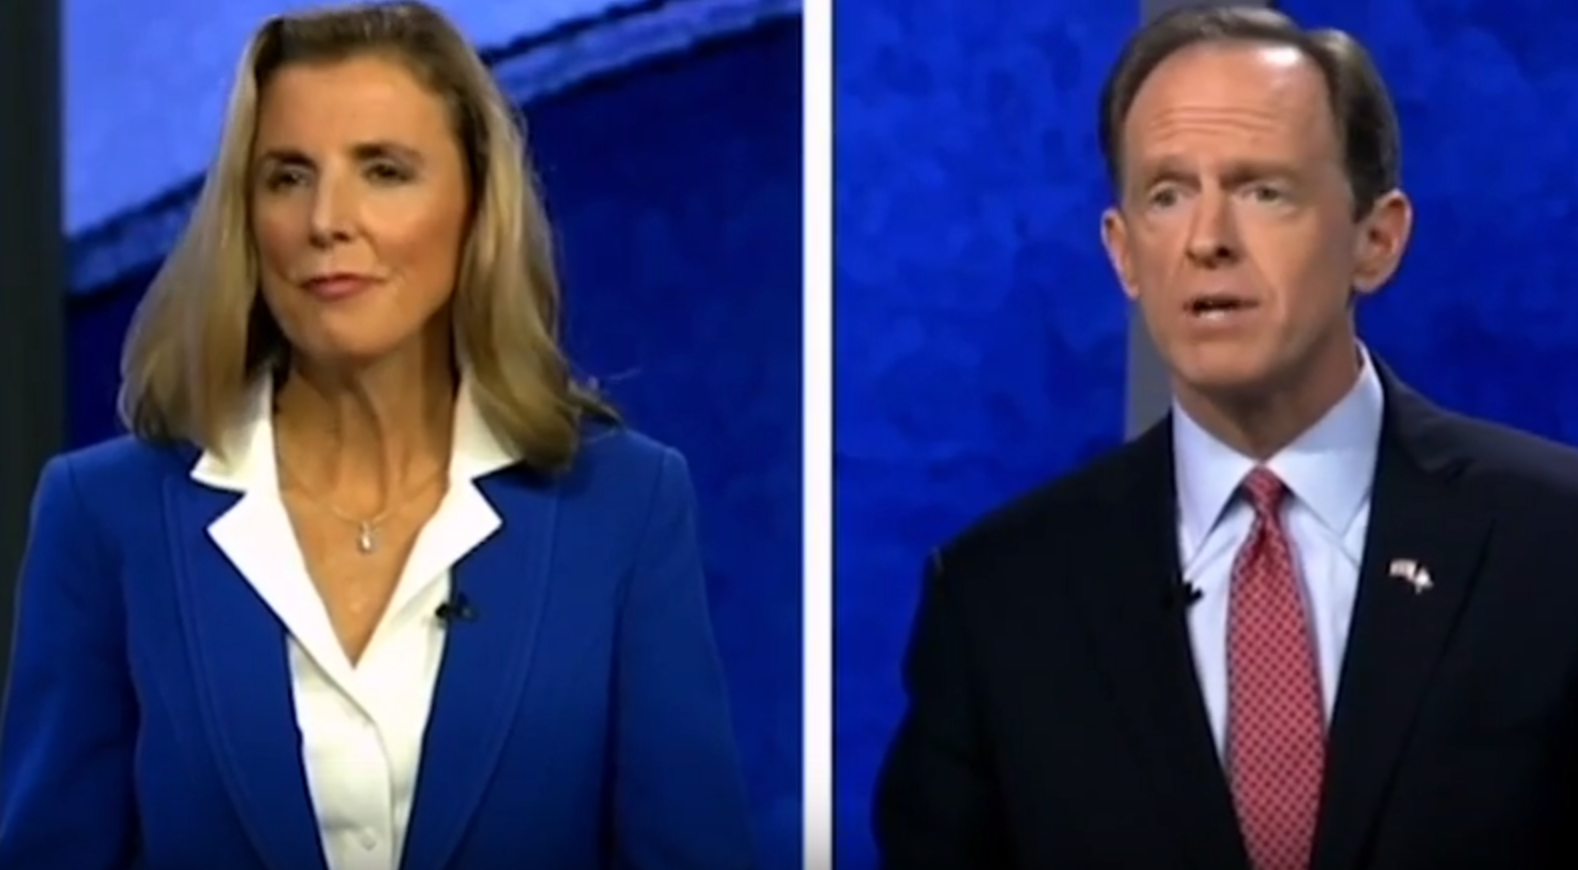 McGinty and Toomey to Debate at TPAC